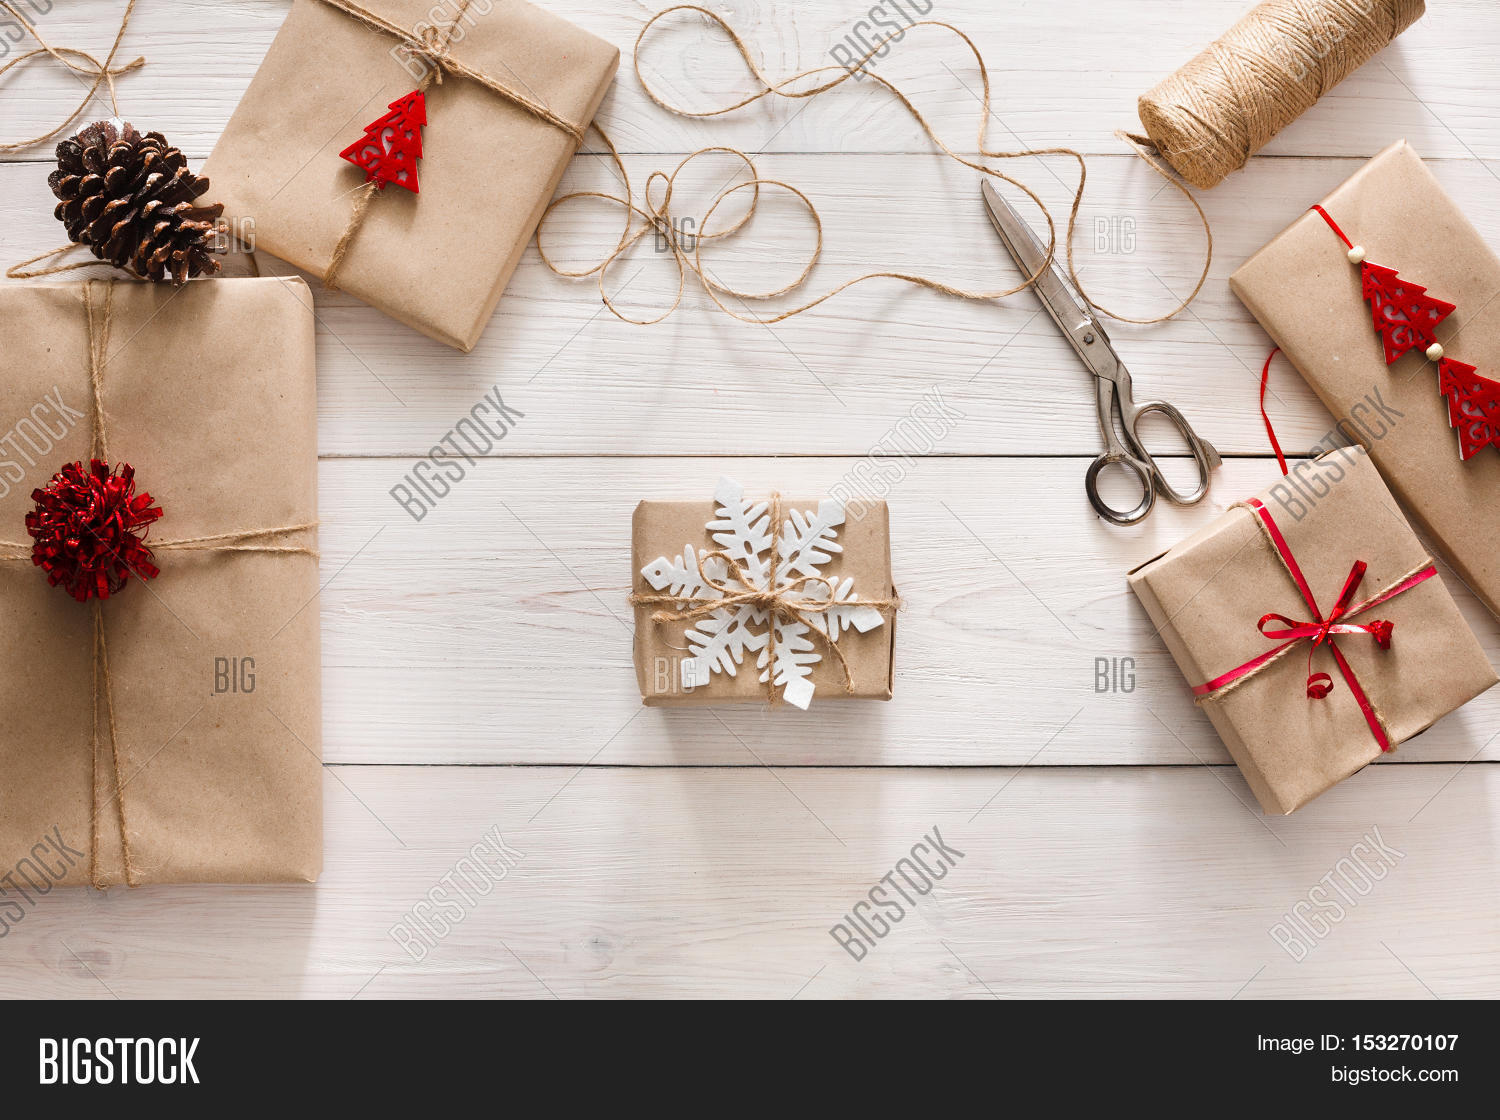 Gift Wrapping. Image & Photo (Free Trial)   Bigstock